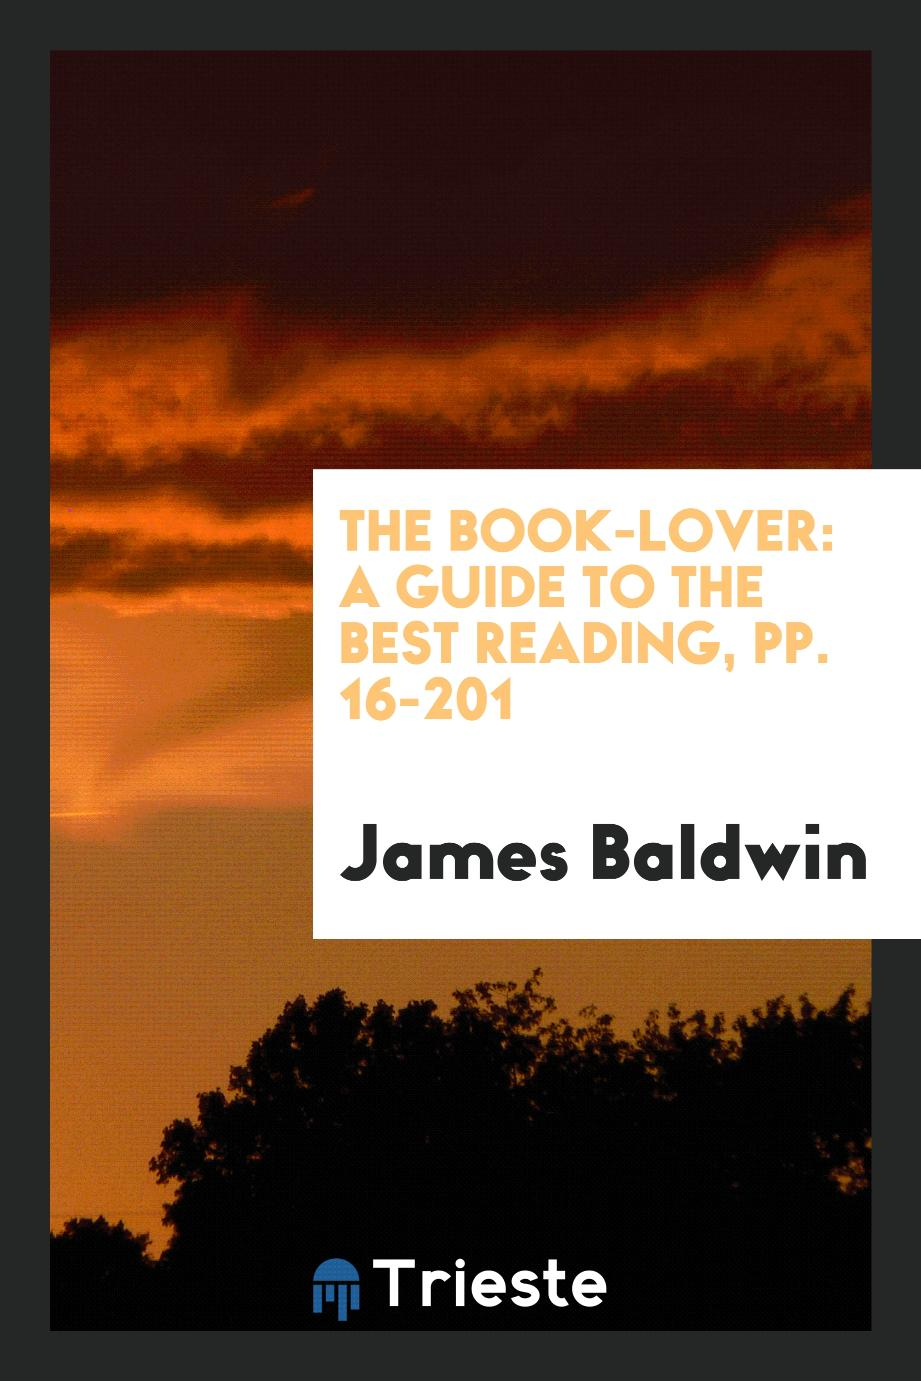 The Book-Lover: A Guide to the Best Reading, pp. 16-201